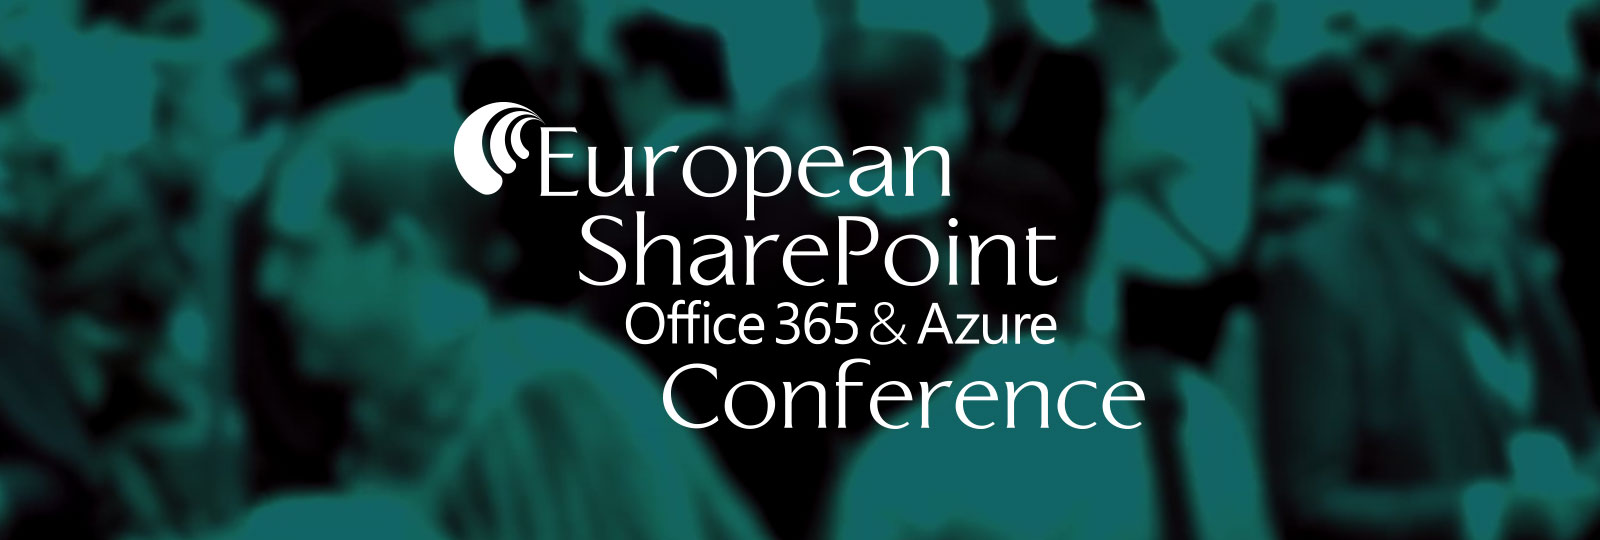 Visit us at European SharePoint Conference